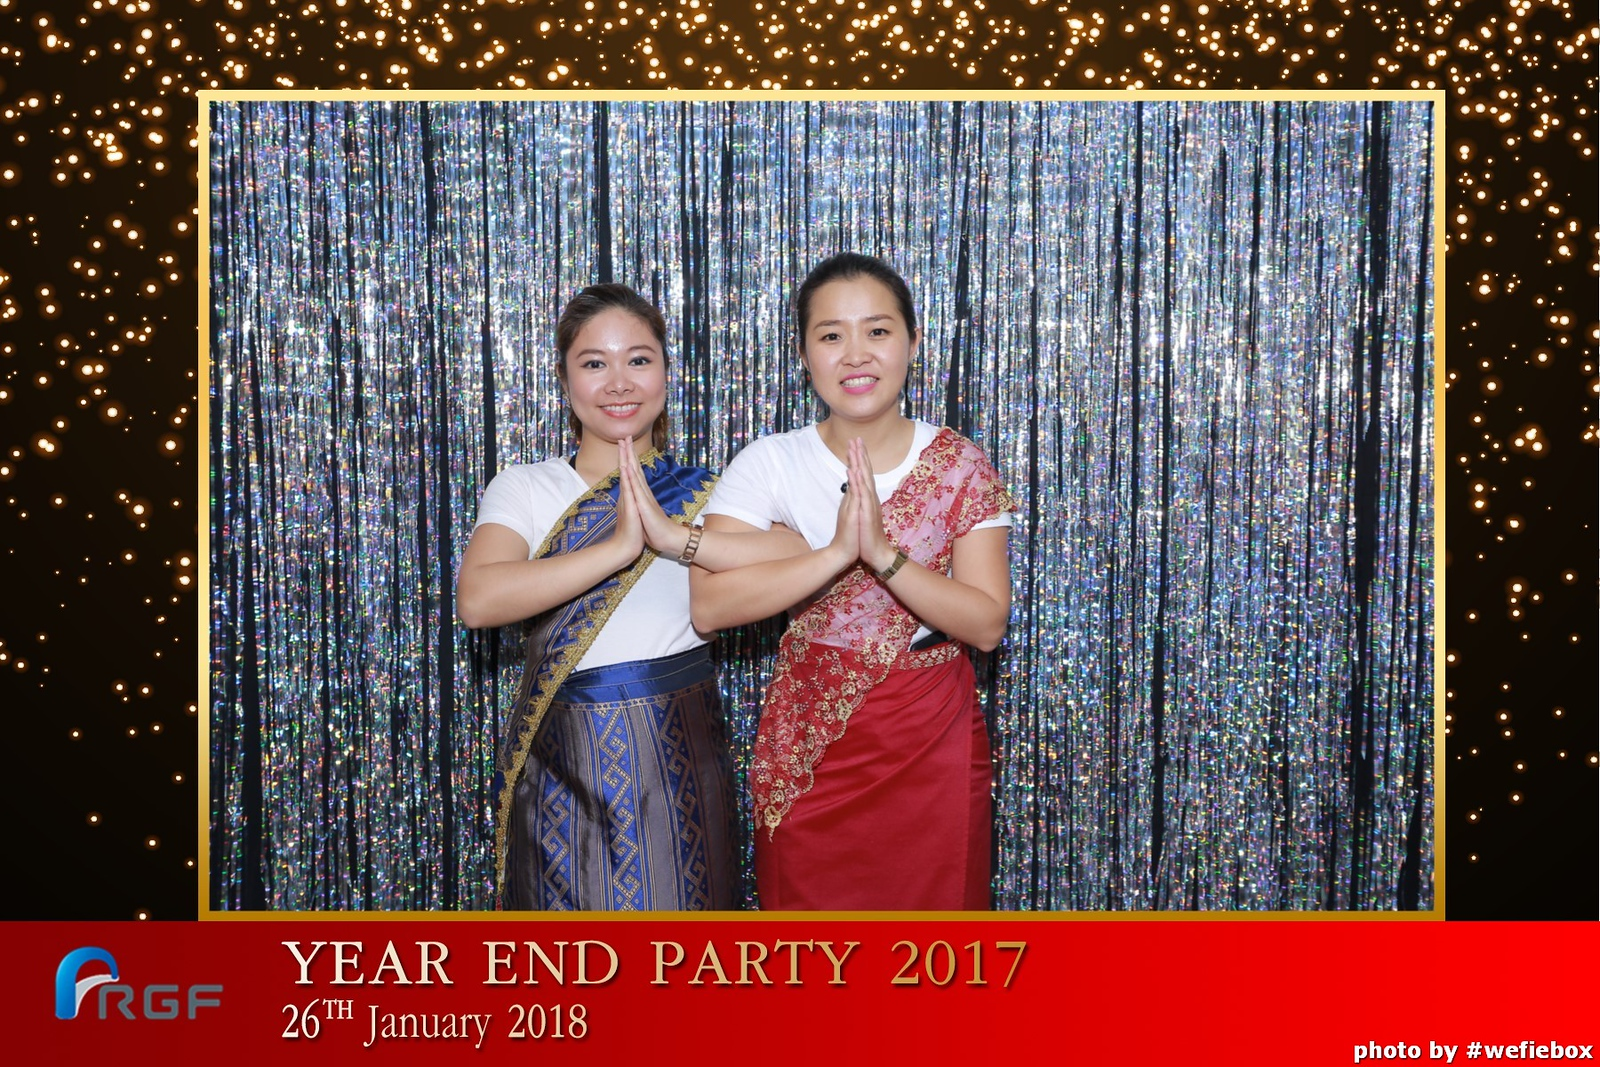 RGF-Excutive-Search-Vietnam-Year-End-Party-2017-photobooth-instant-print-chup-anh-lay-lien-su-kien-tiec-cuoi-007